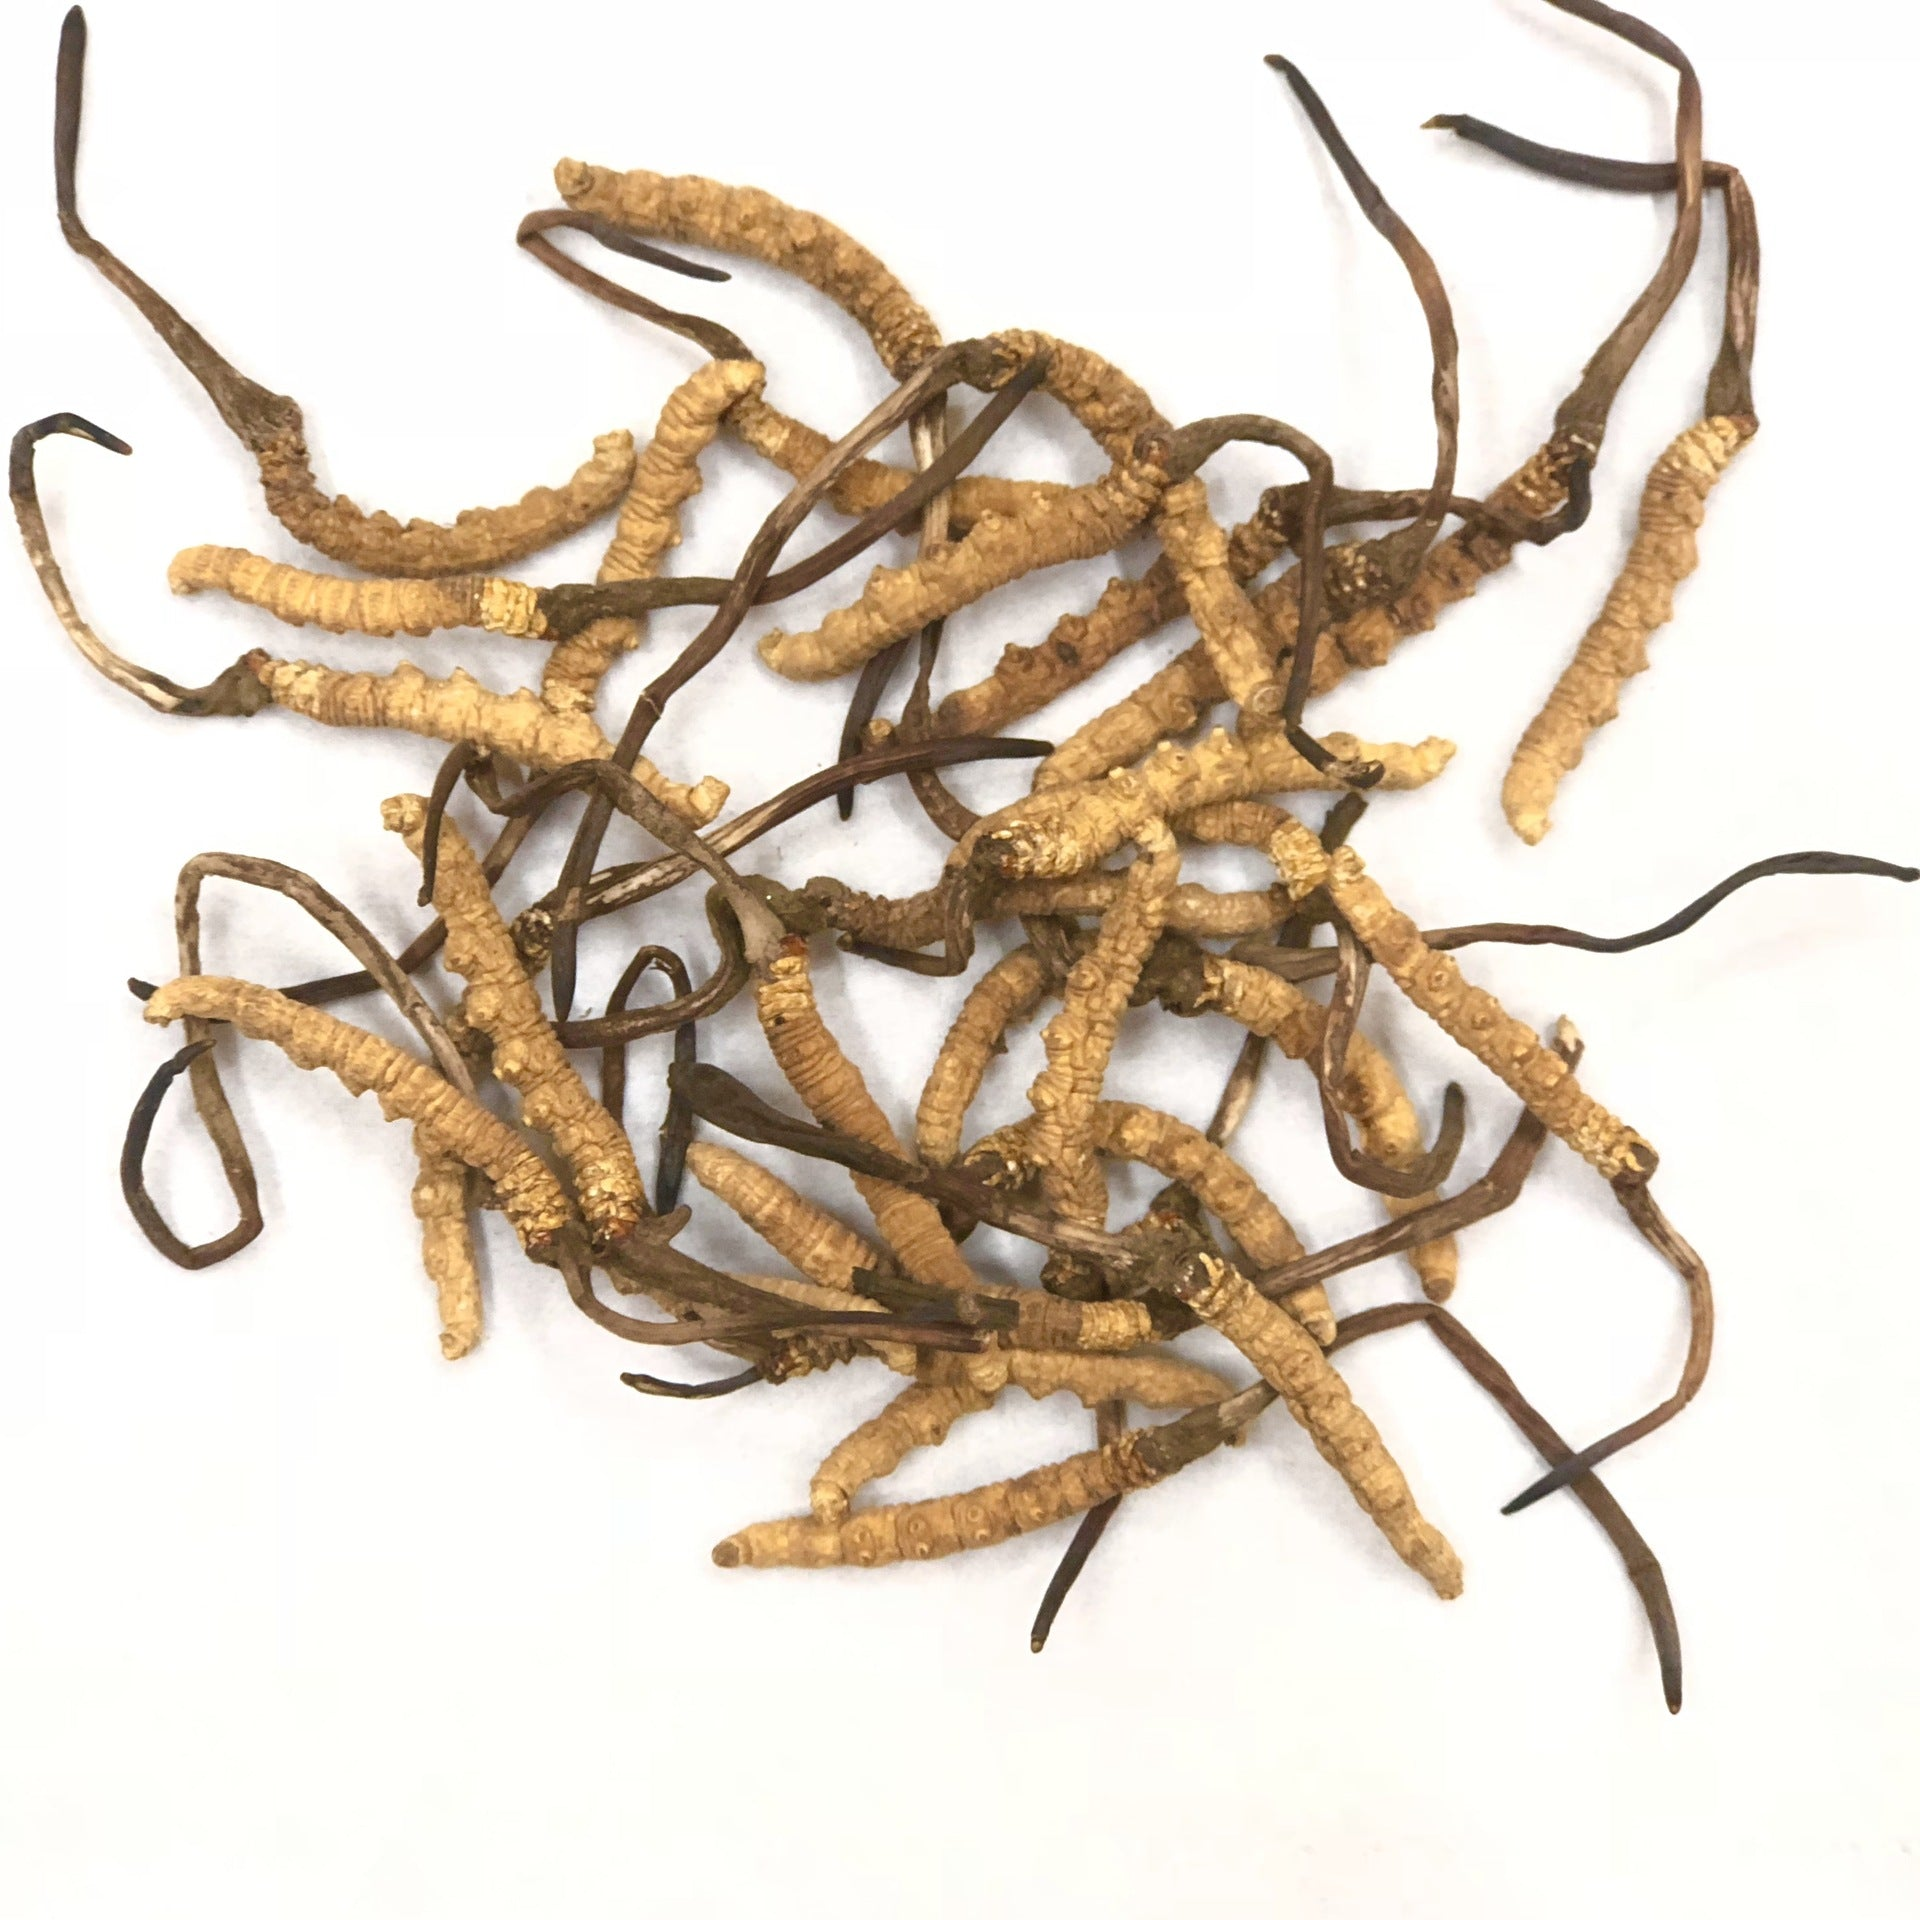 Nagto Cordyceps sinensis, dried stems, large goods wholesale, traditional tonics, a selection of Cordyceps